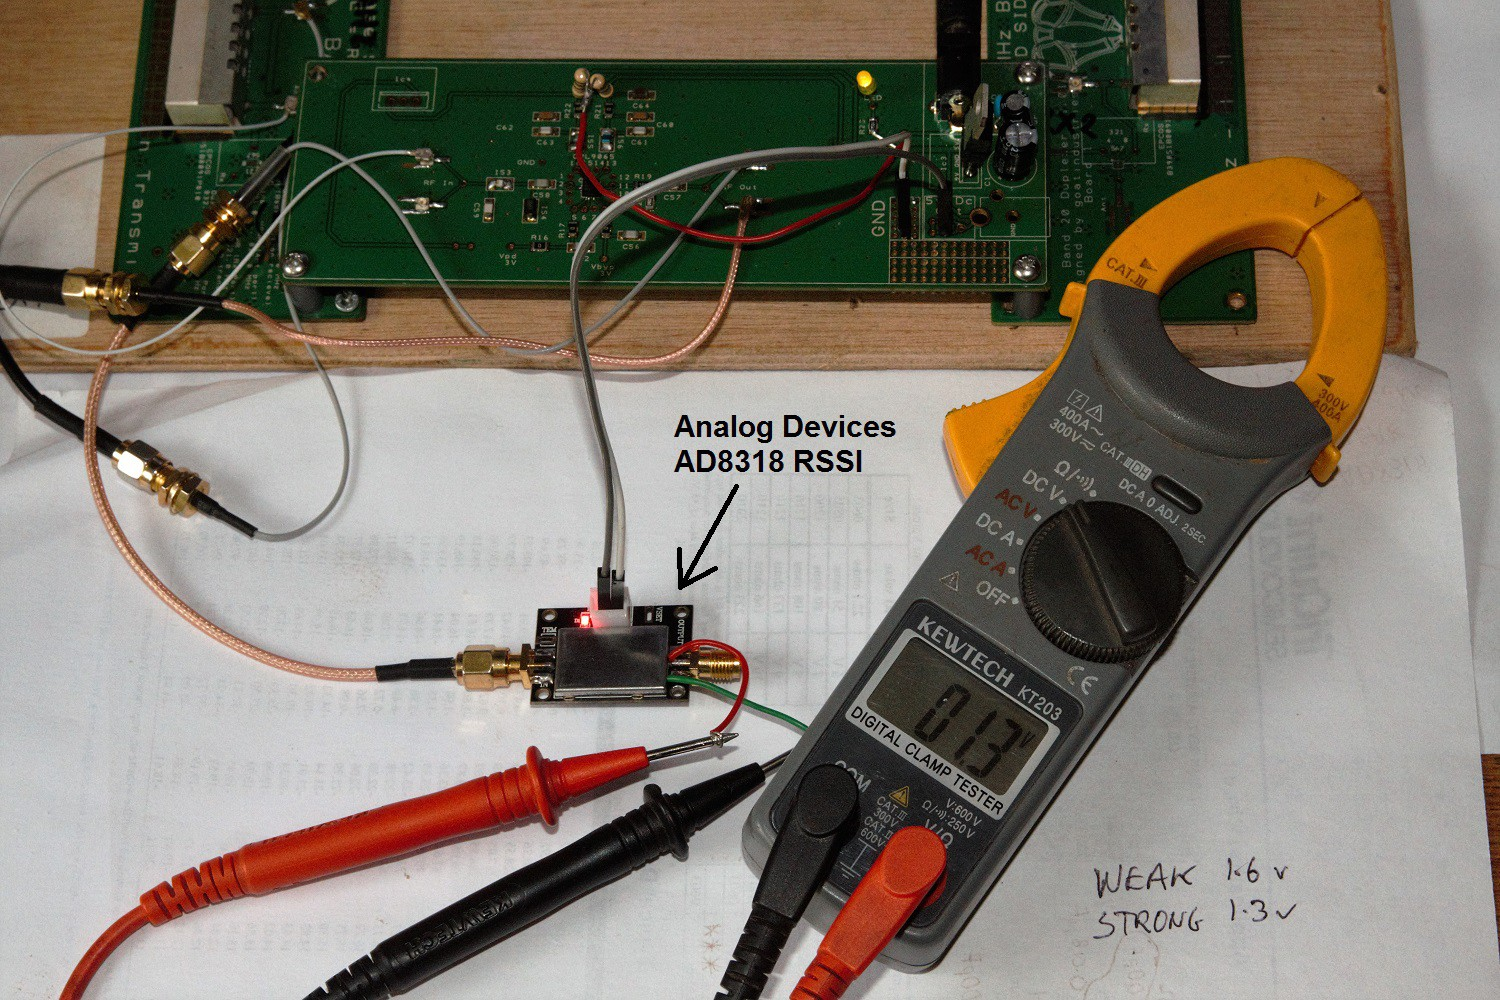 Project Cell Phone 4g Lte Repeater Booster Femtocell Usb Cable With Schematic The Rssi Was Inserted After Lna Circuit And Antenna Moved In Out Of A Faraday Cage Voltage Recorded Varied Between 16 13 Volts